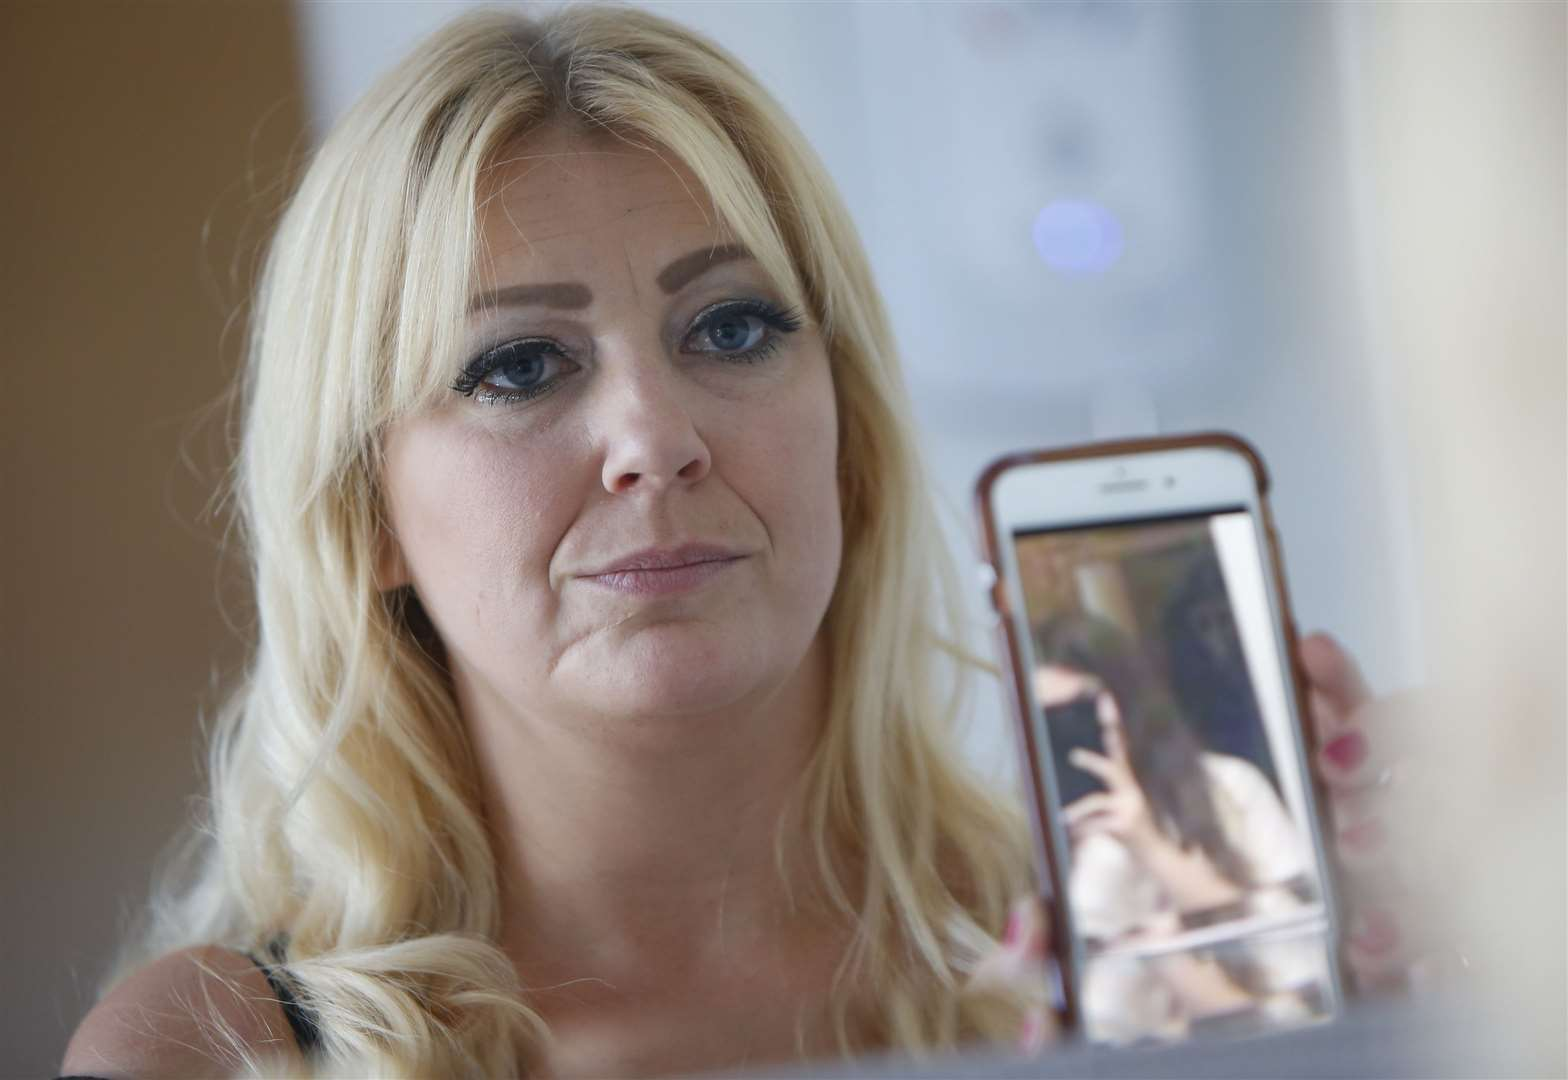 Vikki Booth is convinced her home is haunted after spotting a ghoul in a mirror selfie